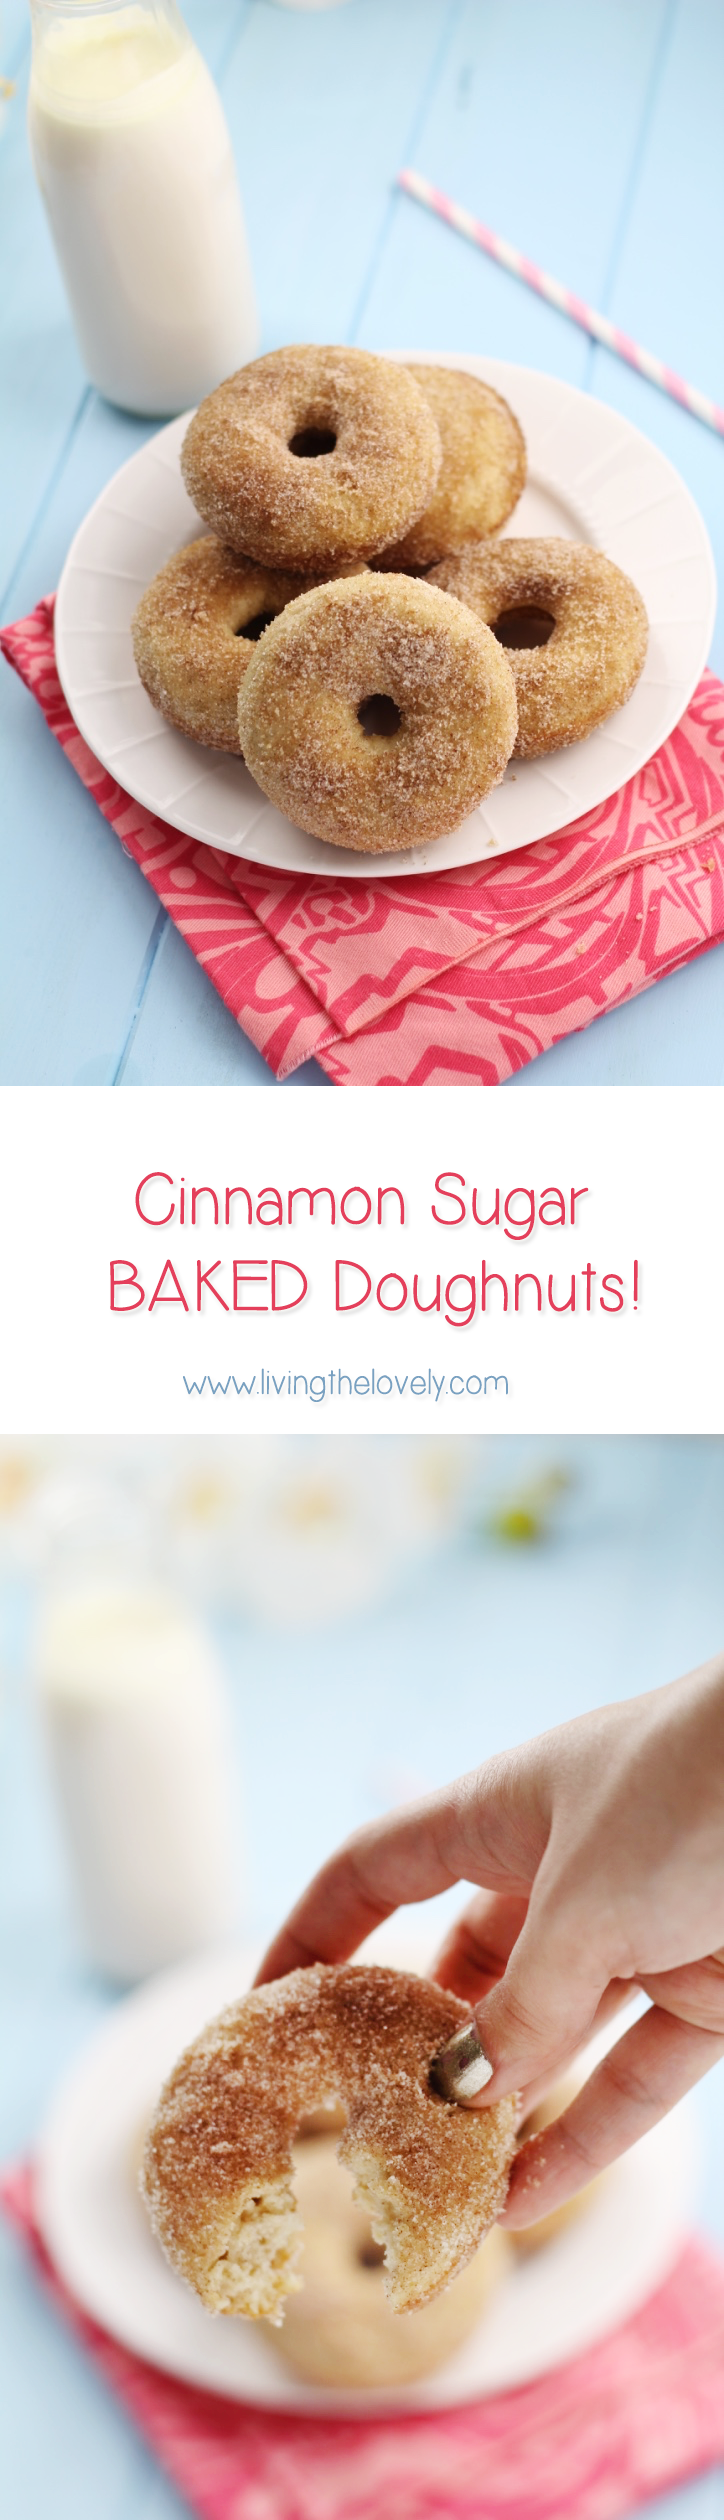 Super quick and easy to make baked cinnamon sugar doughnuts! These are seriously SOO good they disappear super quick!